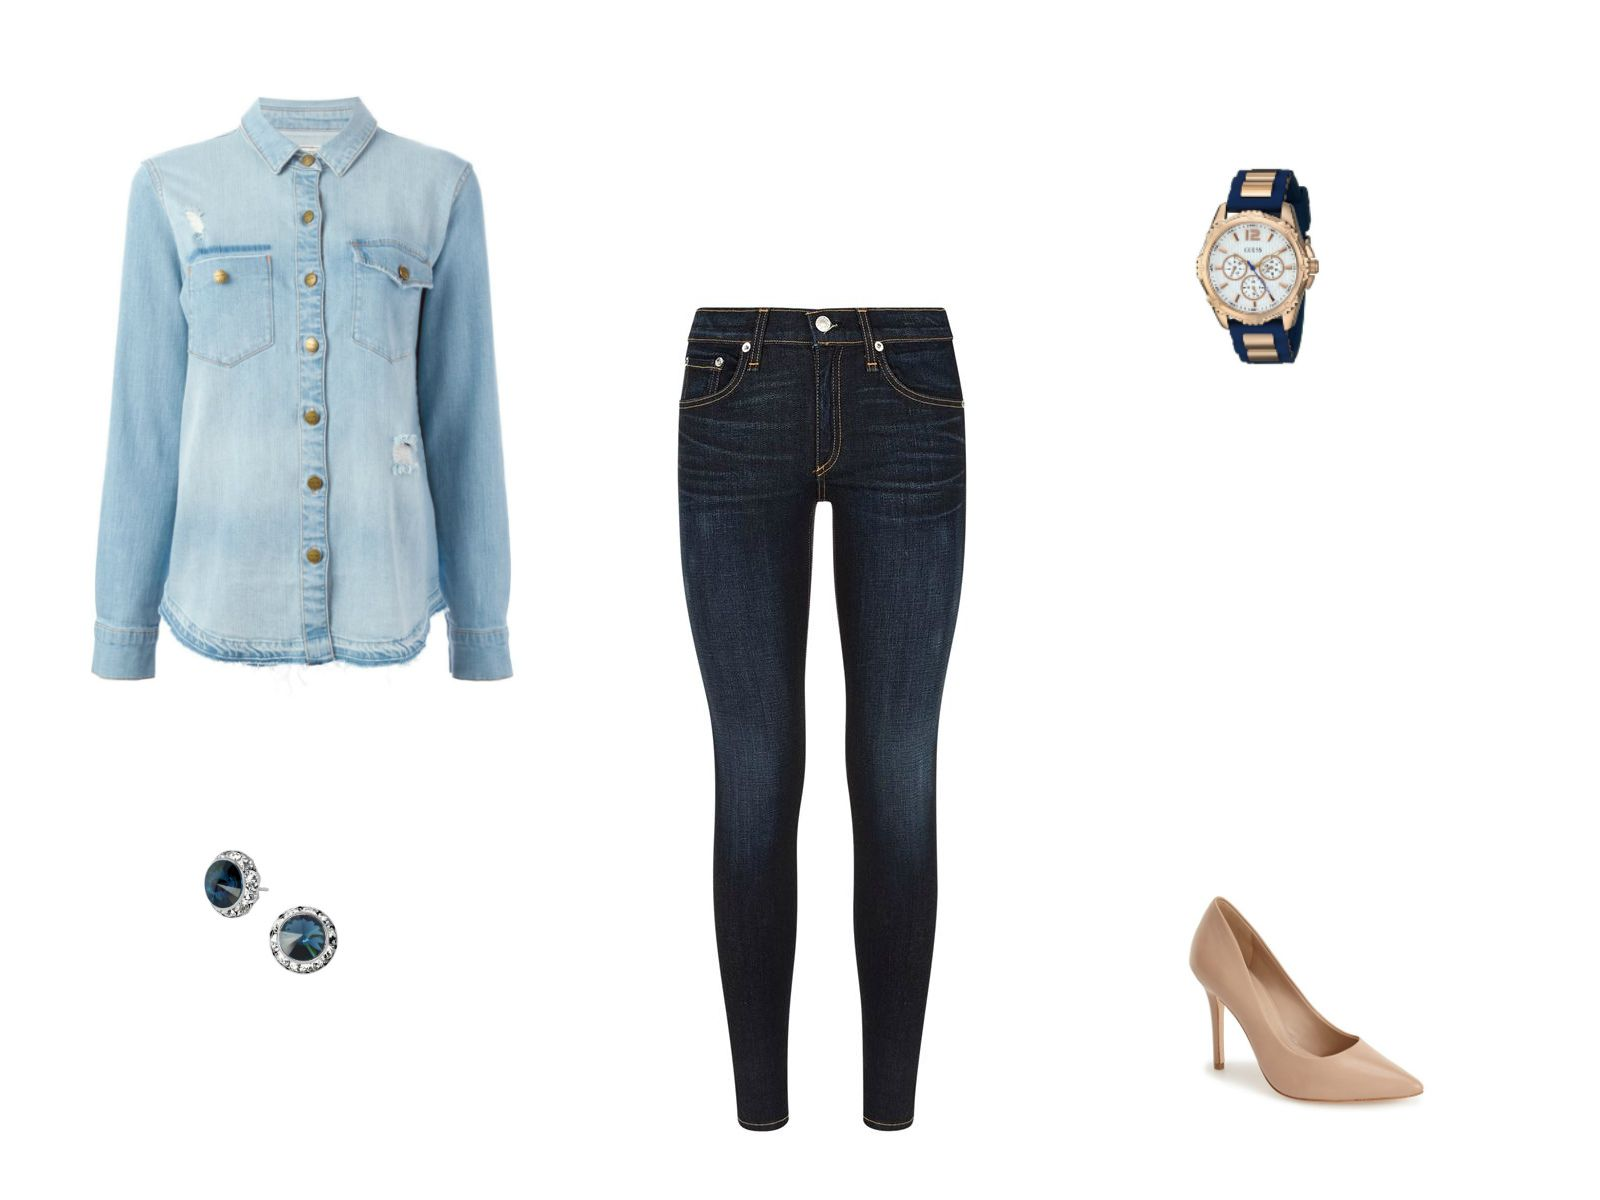 The Denim Shirt - How To Wear It 12 Different Ways 9109e242862